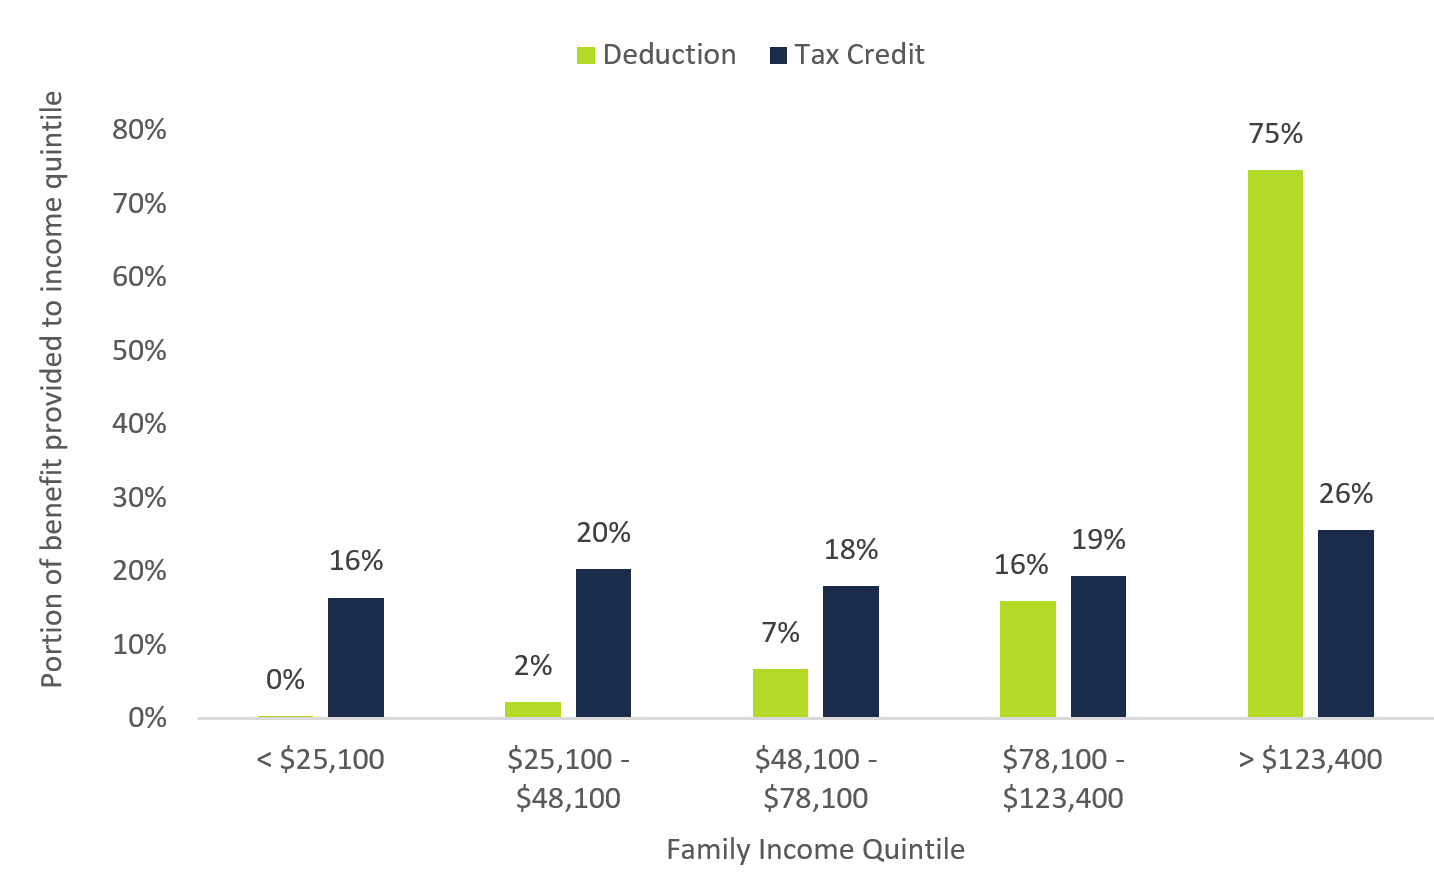 Figure 5 2: Distribution of tax expenditure benefits by deductions and credits, per cent of total